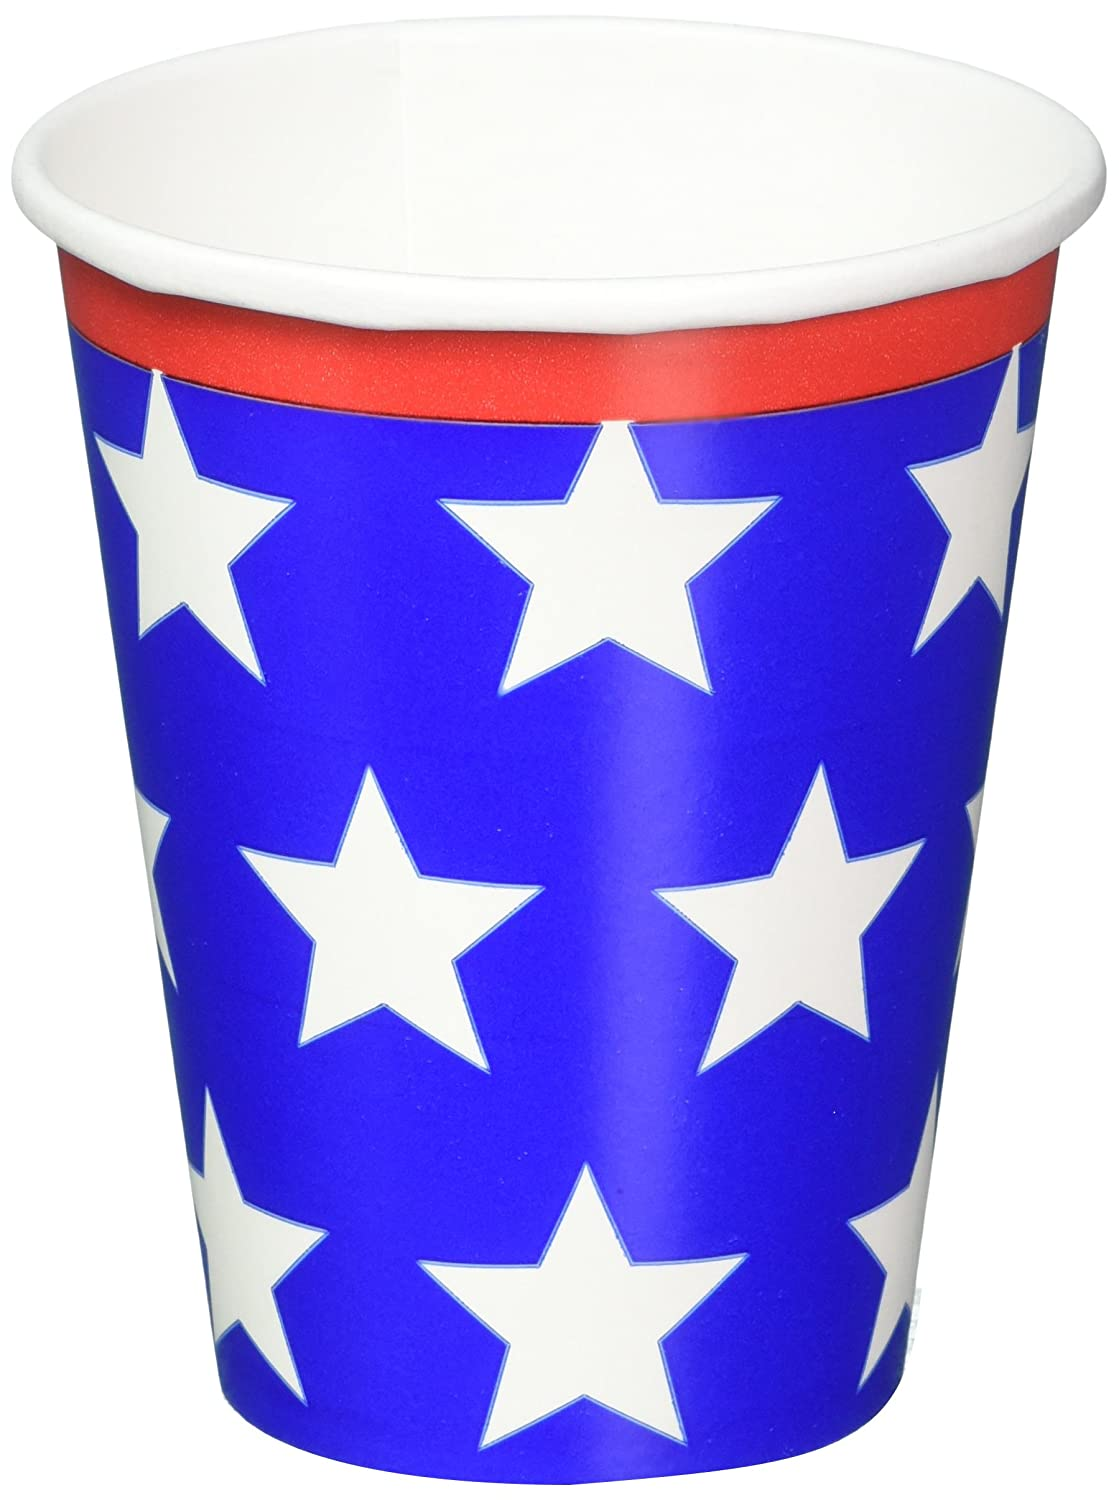 7396561 18 Ct TradeMart Inc 9 oz. White and Blue Stars Party Cups Red